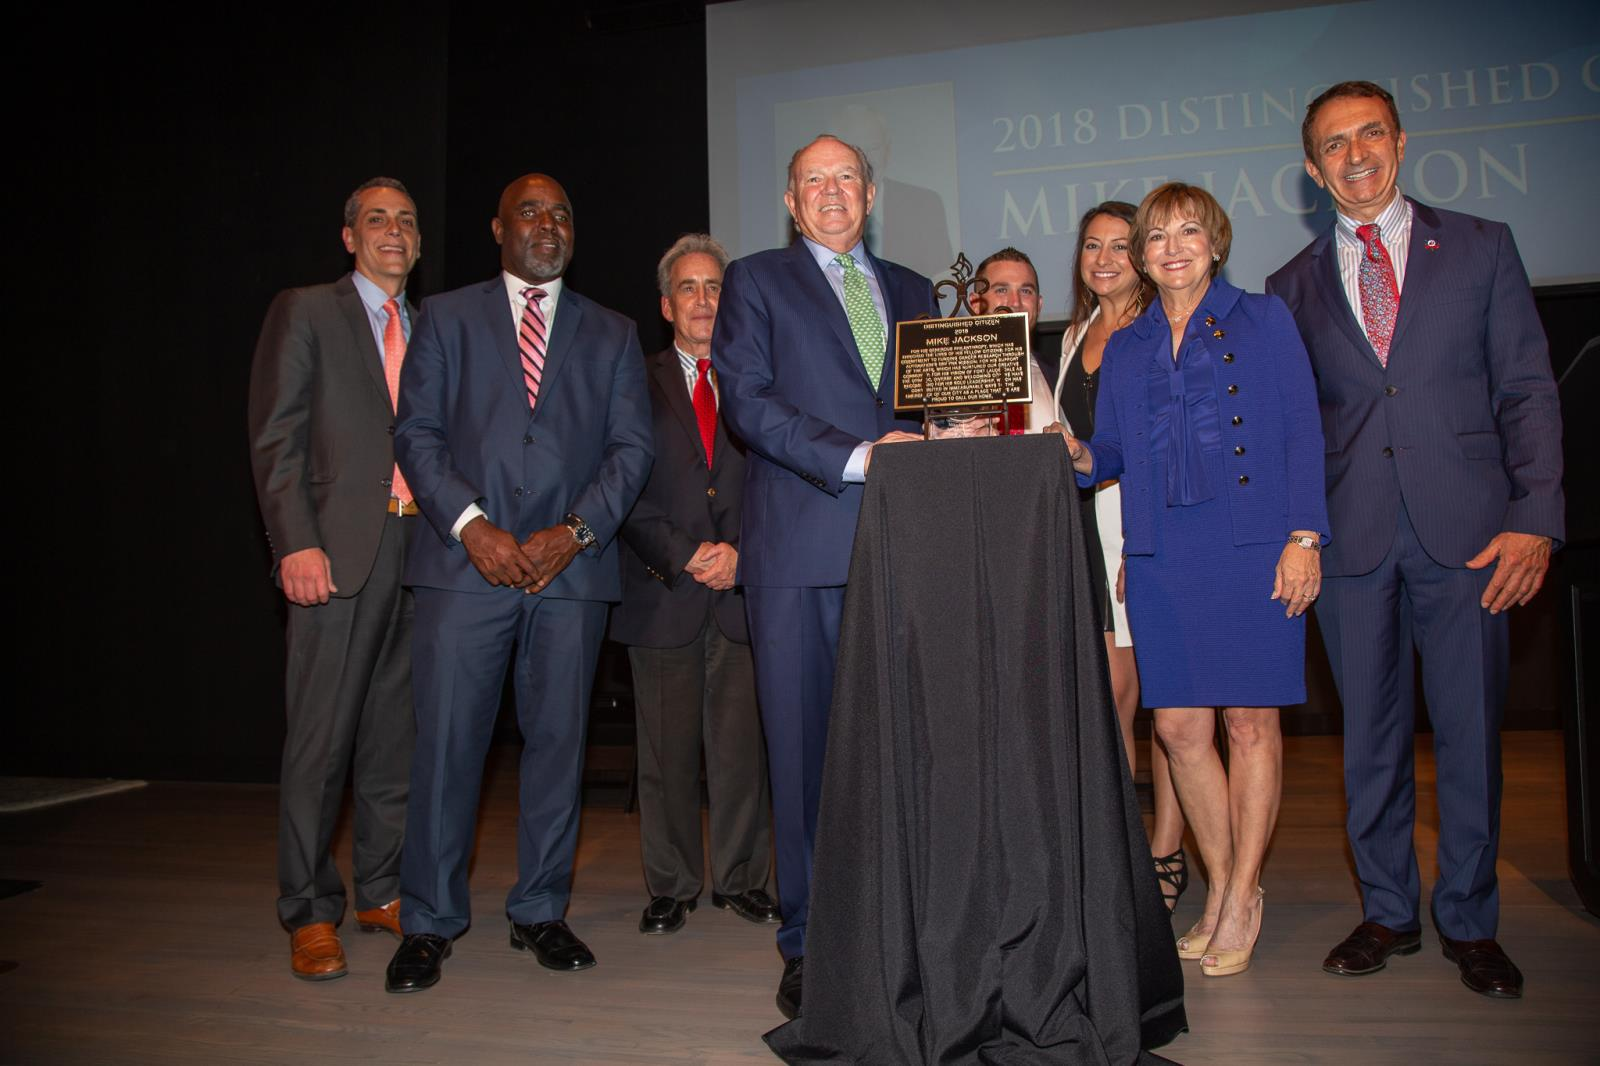 Fort Lauderdale City Commission and 2018 Distinguished Citizen Mike Jackson